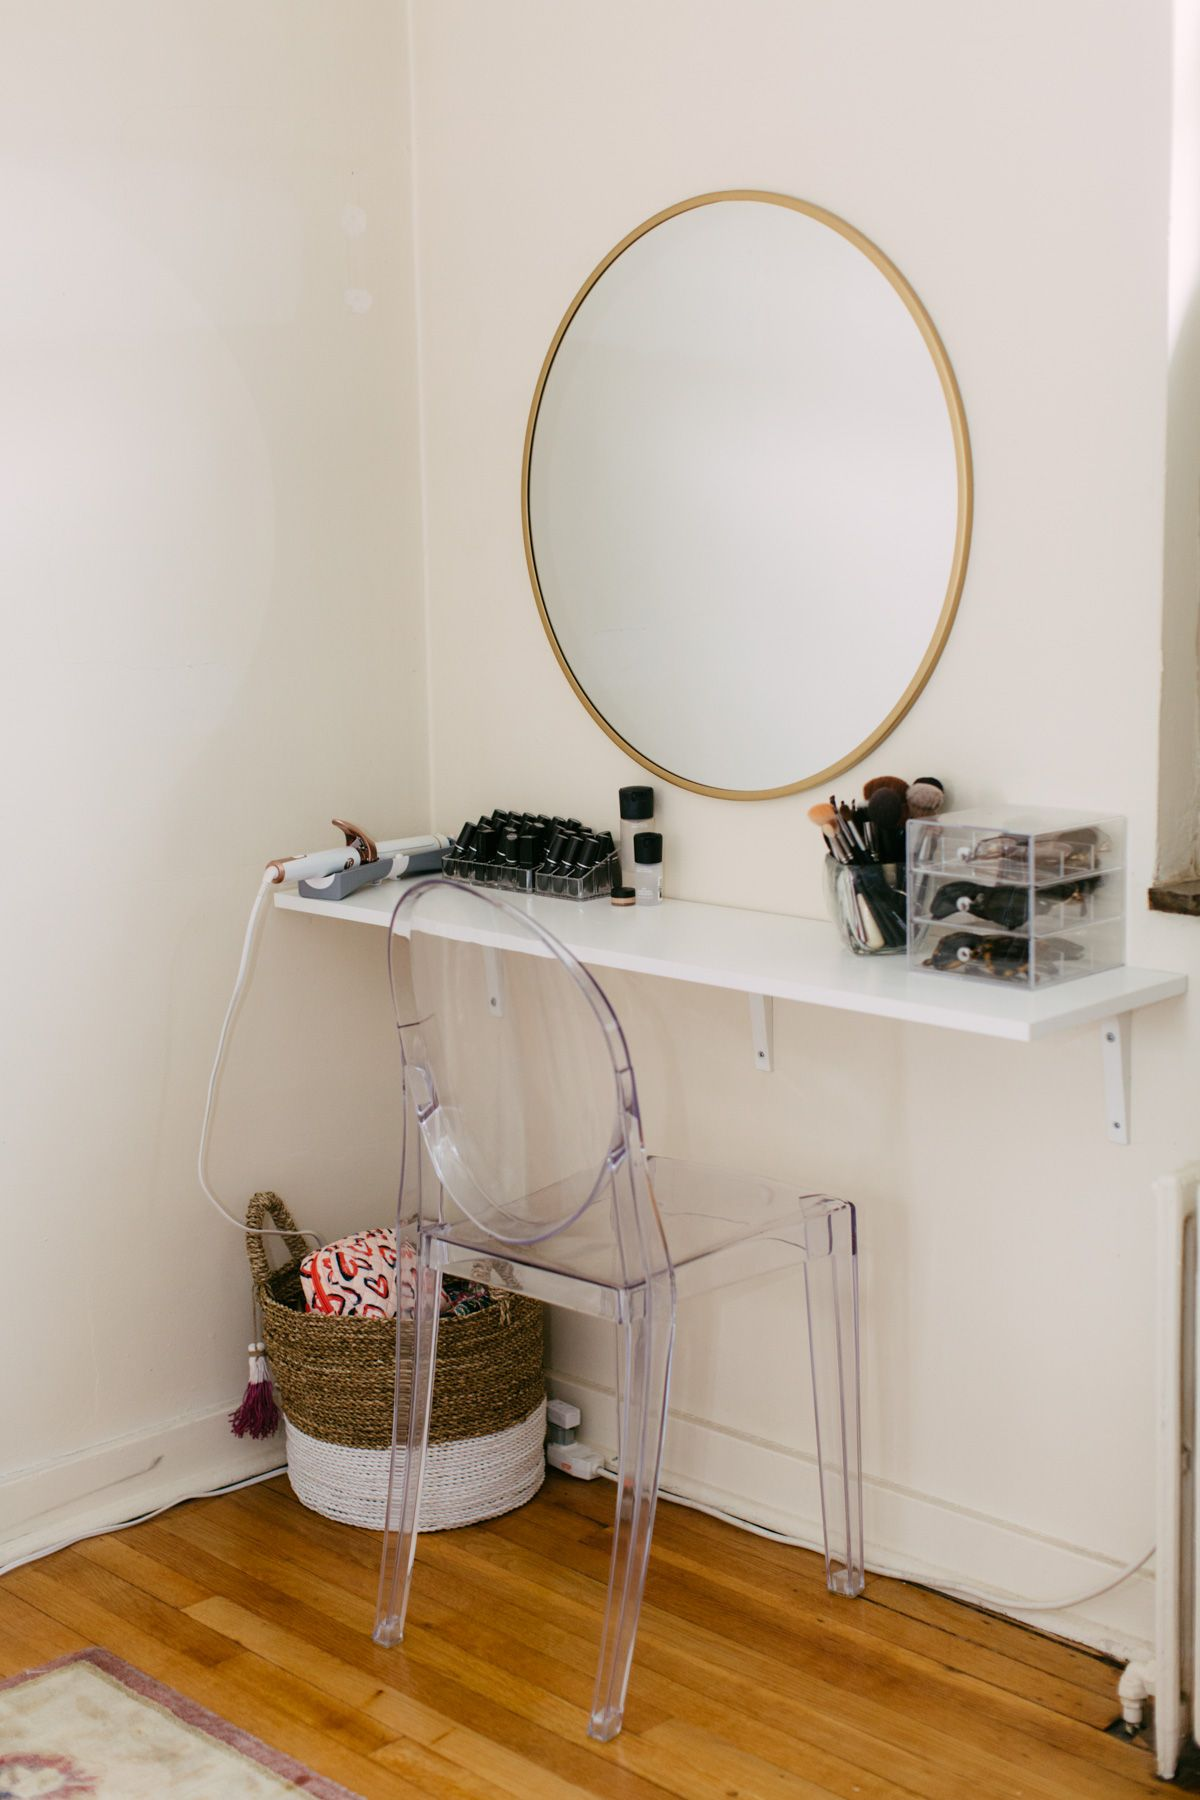 How I Created a Super Simple DIY Vanity Diy makeup desk